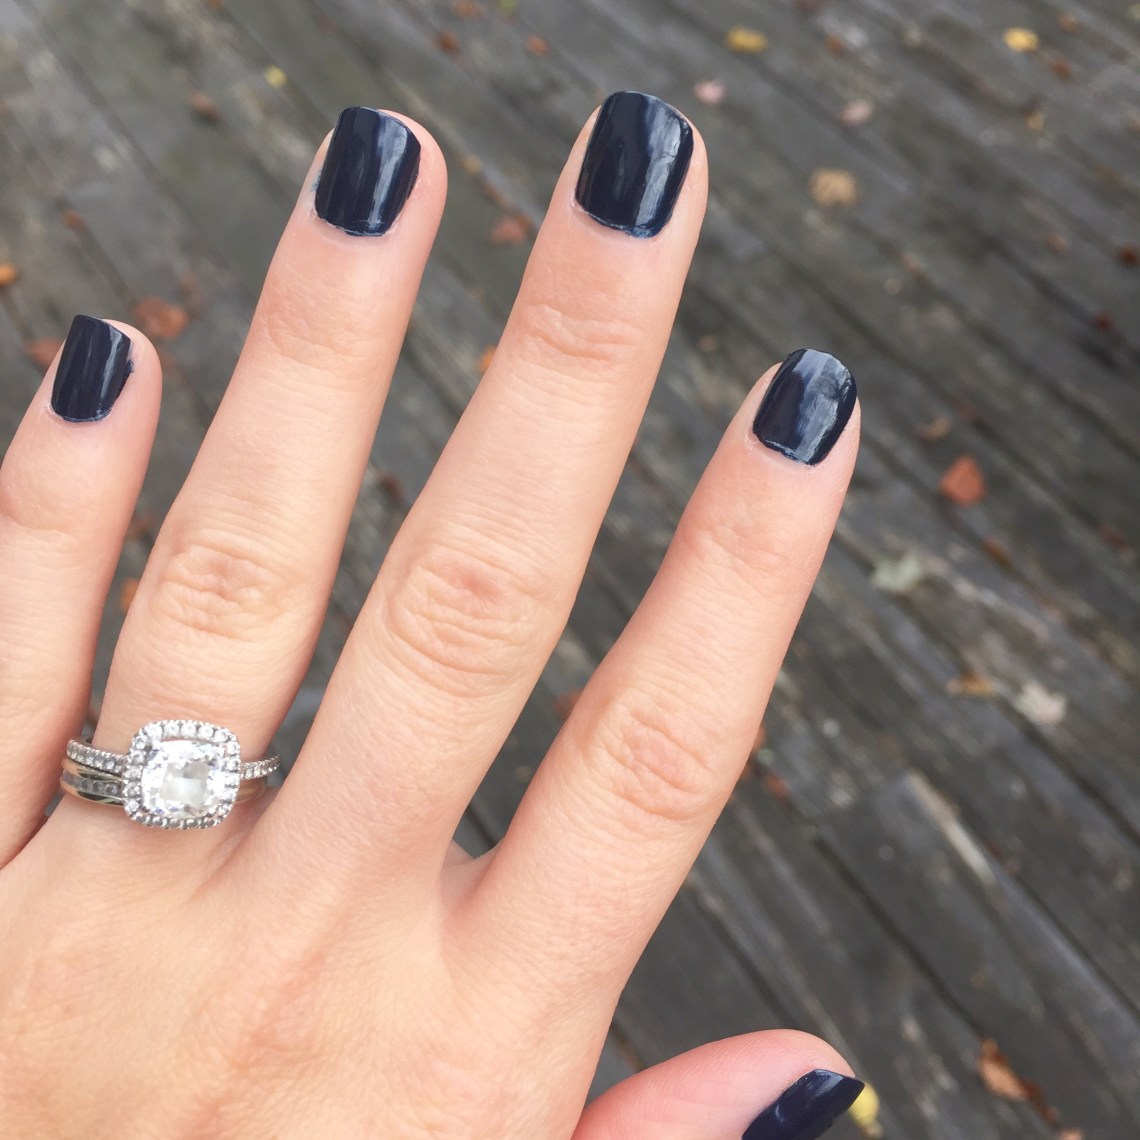 nail color for fall - navy